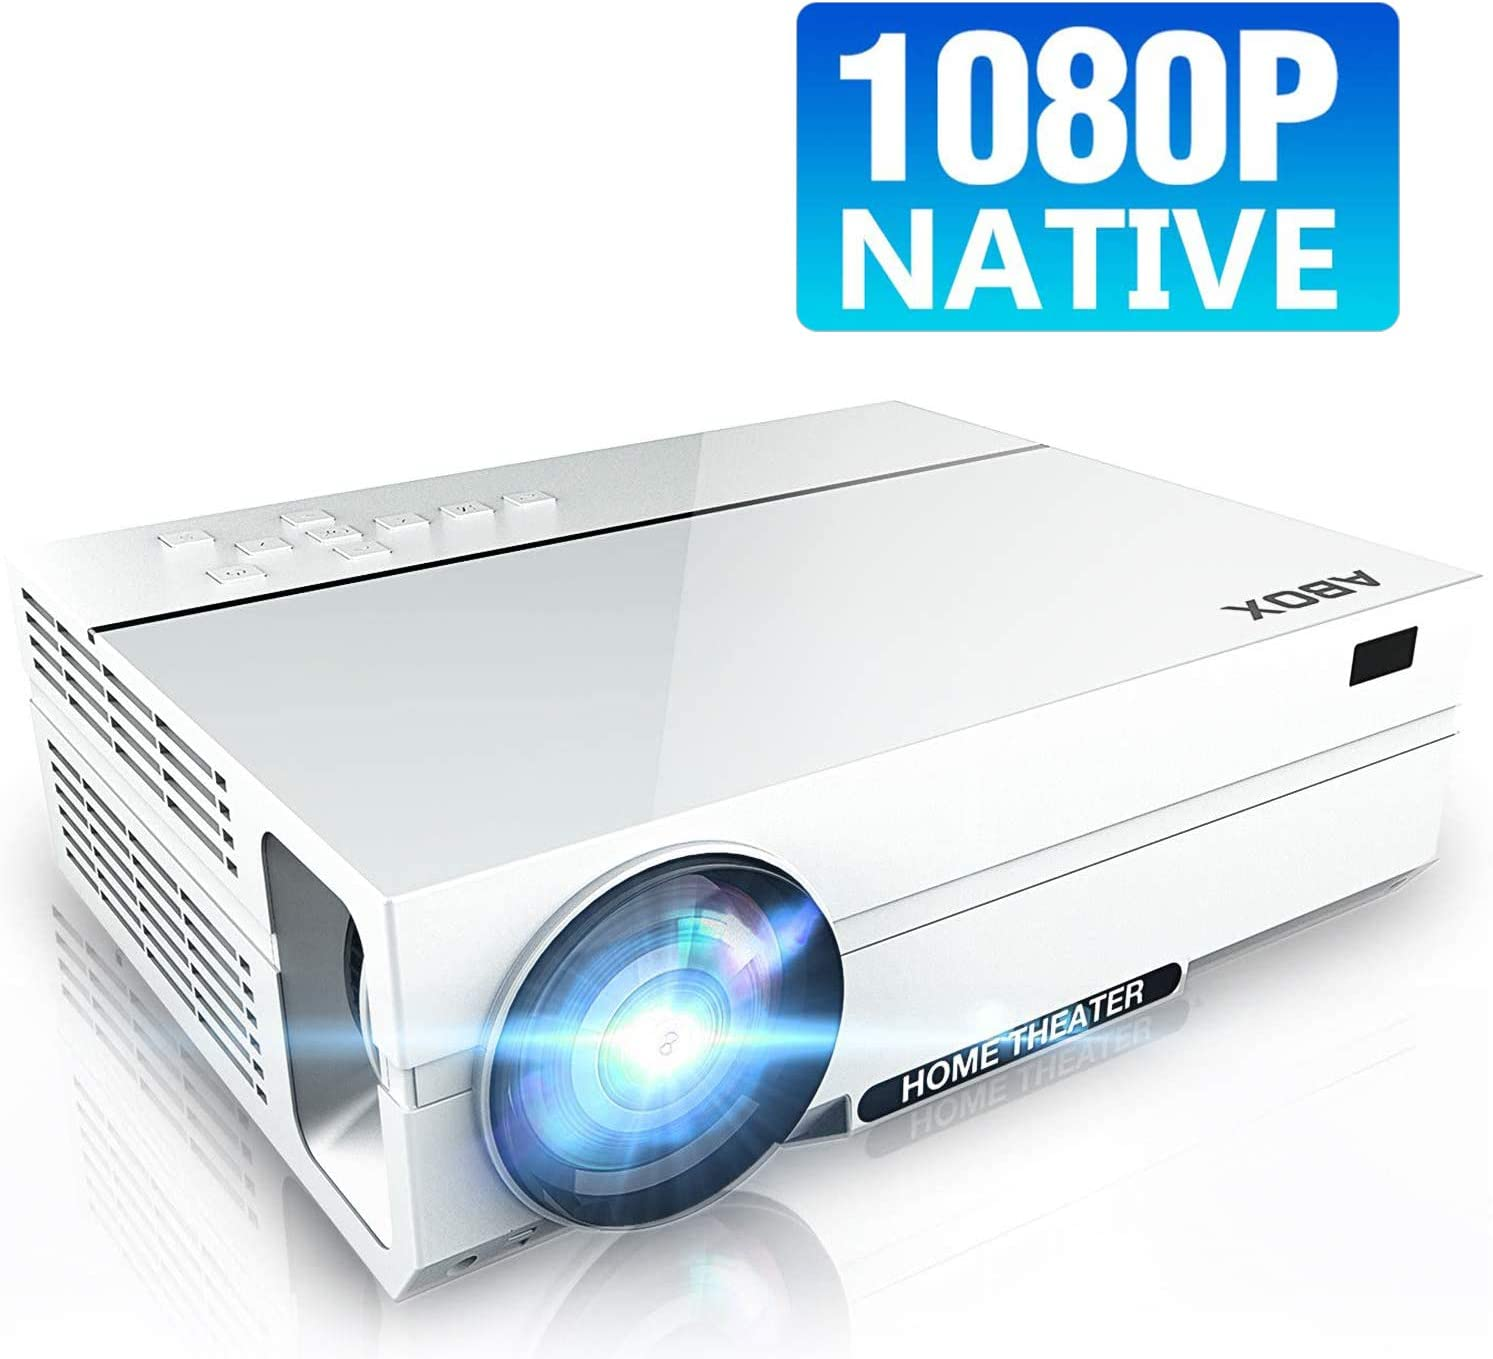 Bomaker Projector Native 1080p Home Theatre, Full HD Support 1080p Video Projector, Upgraded 5000 Lux, 50000 Hrs, 2X HiFi Speakers,for Android/ iOS / Laptops/ PCs/ Windows 10